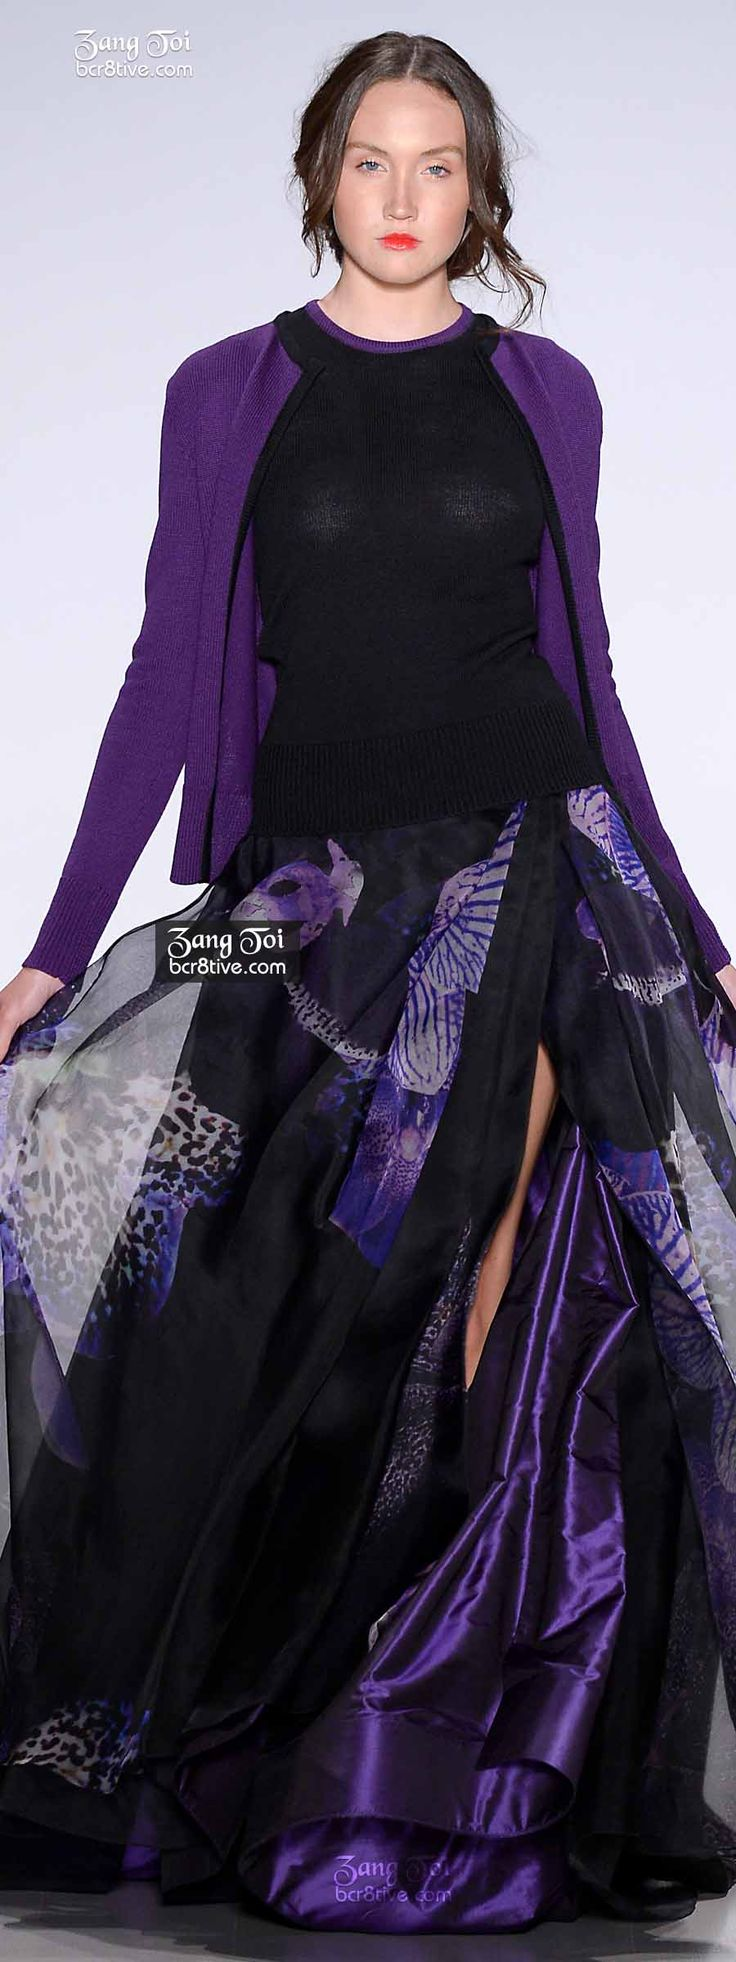 best black and purple images on pinterest